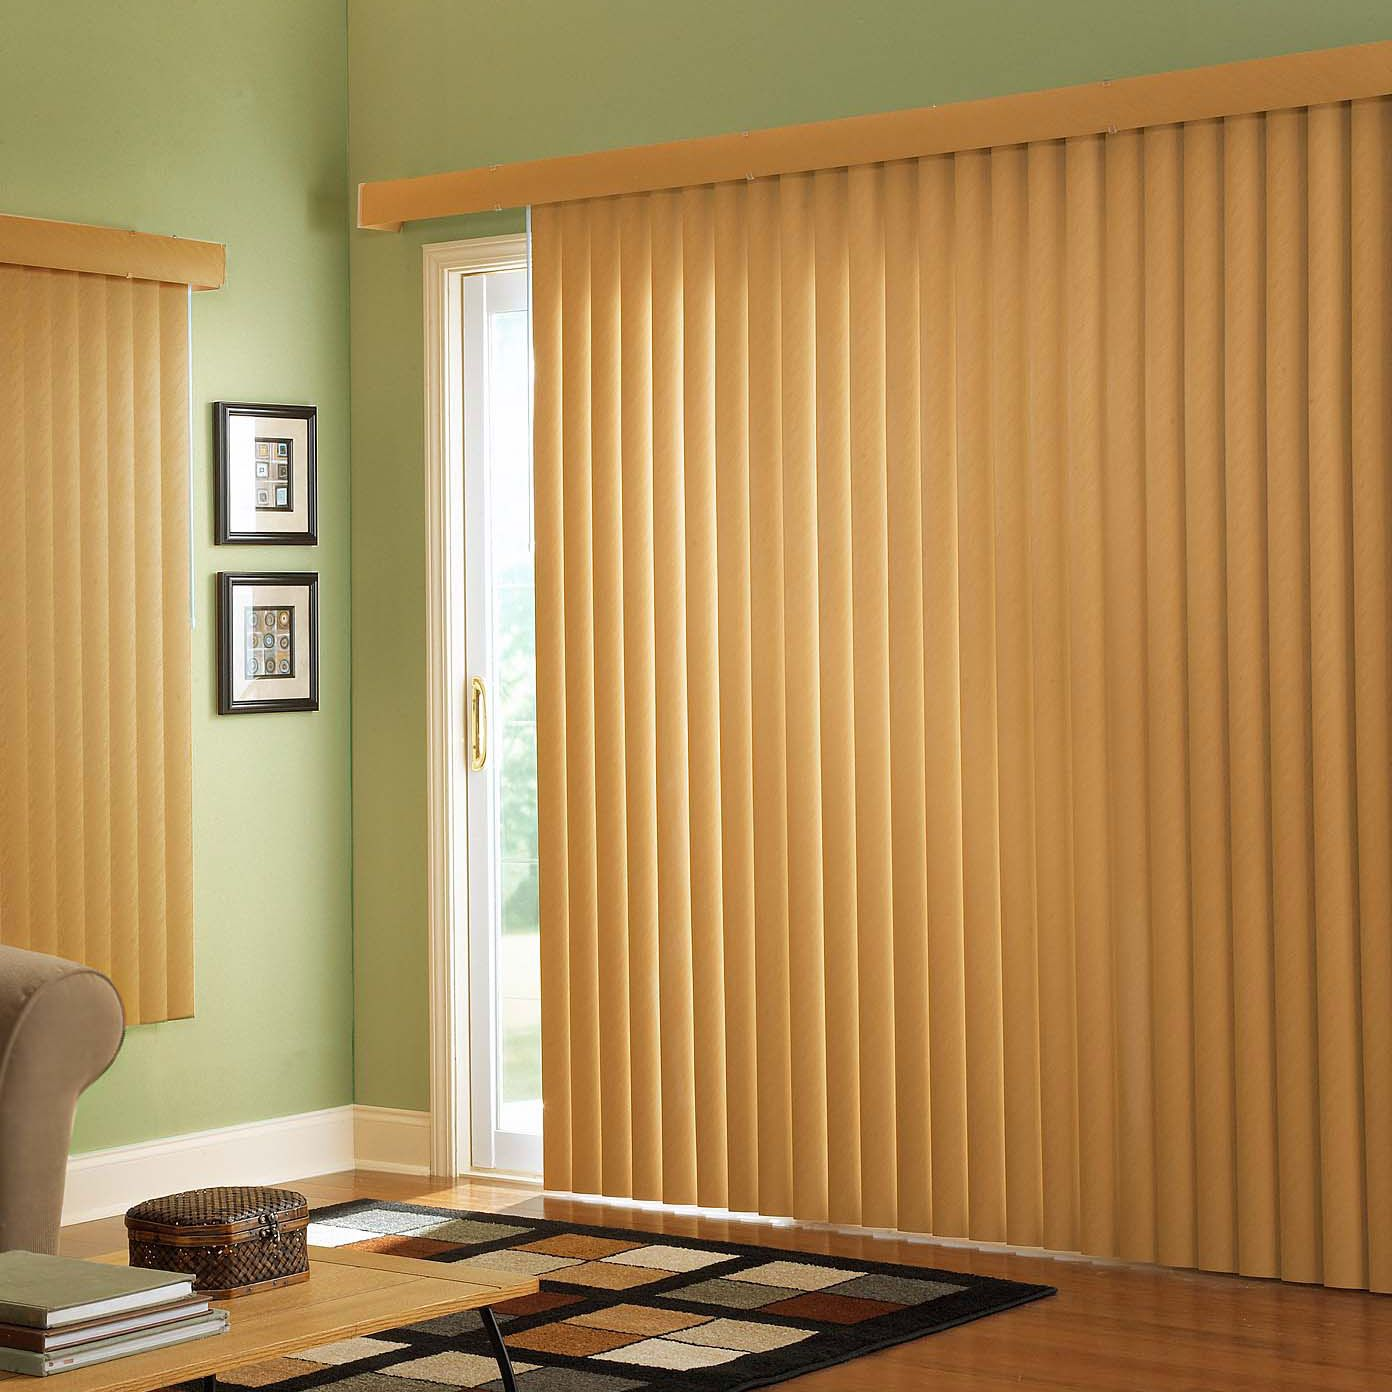 Choosing The Right Window Blinds For Your Home